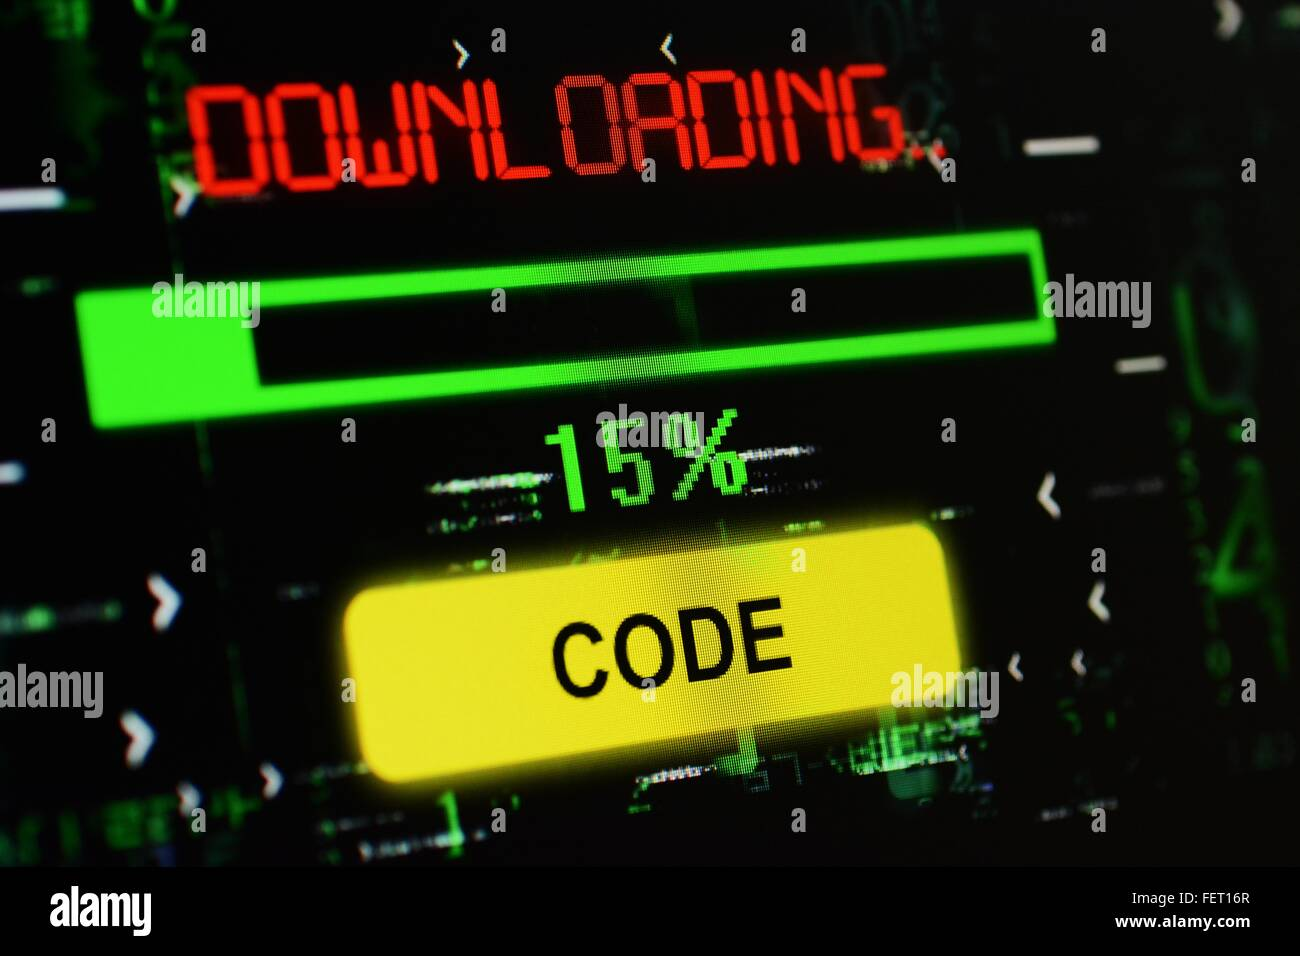 Downloading code - Stock Image